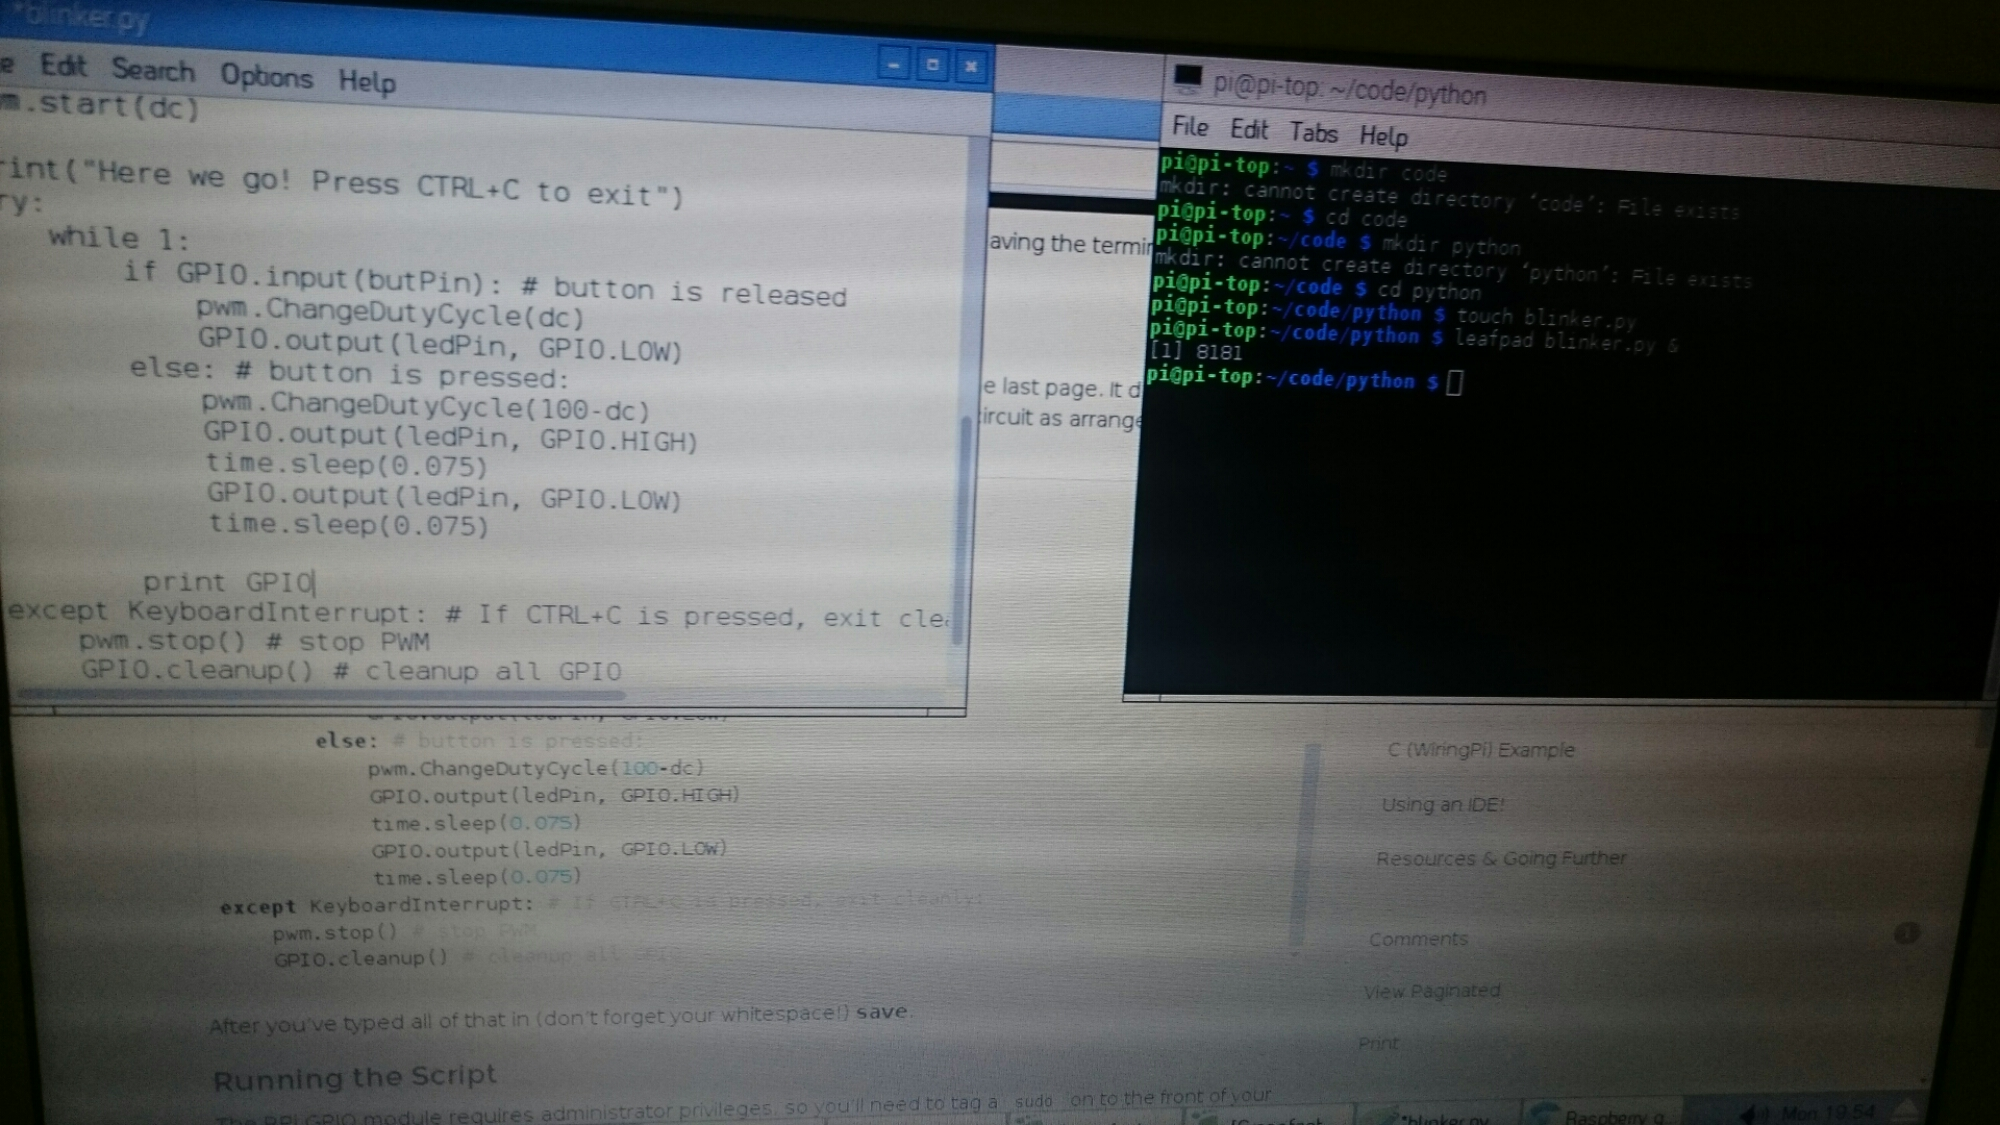 Raspberrypi Antwerpenhomeschooling Wiringpi Soft Pwm Example Try Watching This Video On Youtubecom Or Enable Javascript If It Is Disabled In Your Browser